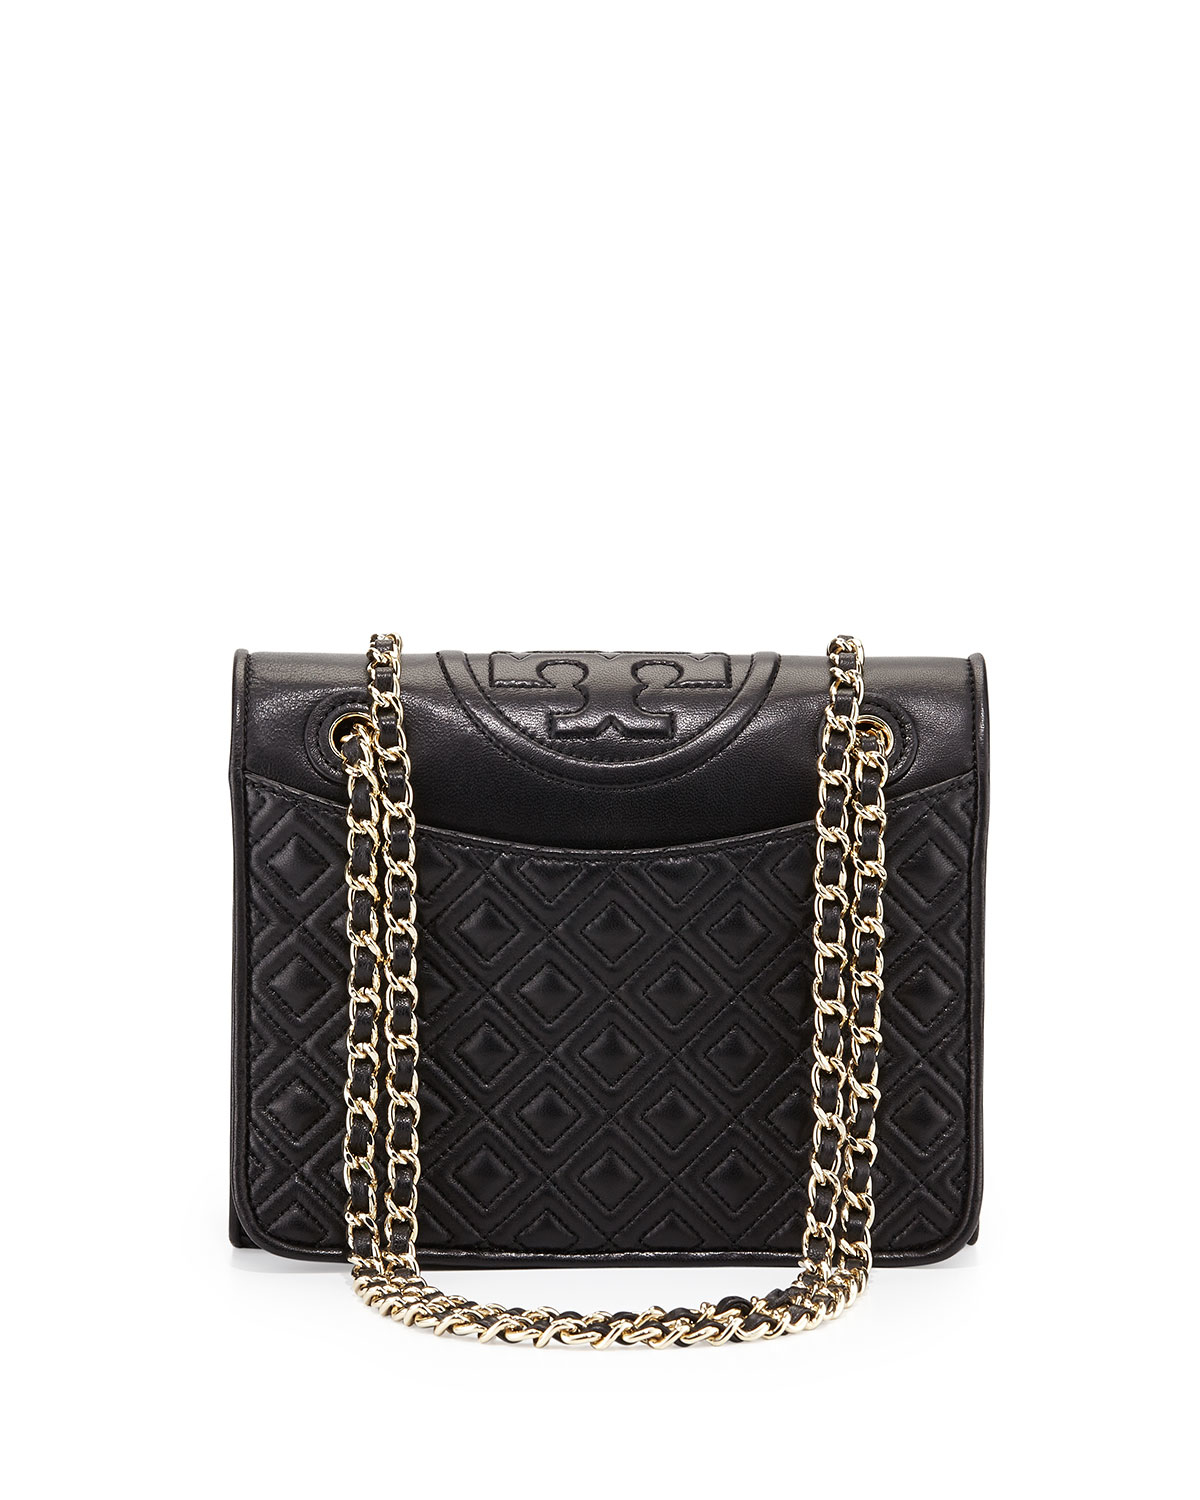 203295318b8a Lyst - Tory Burch Fleming Medium Quilted Shoulder Bag in Black